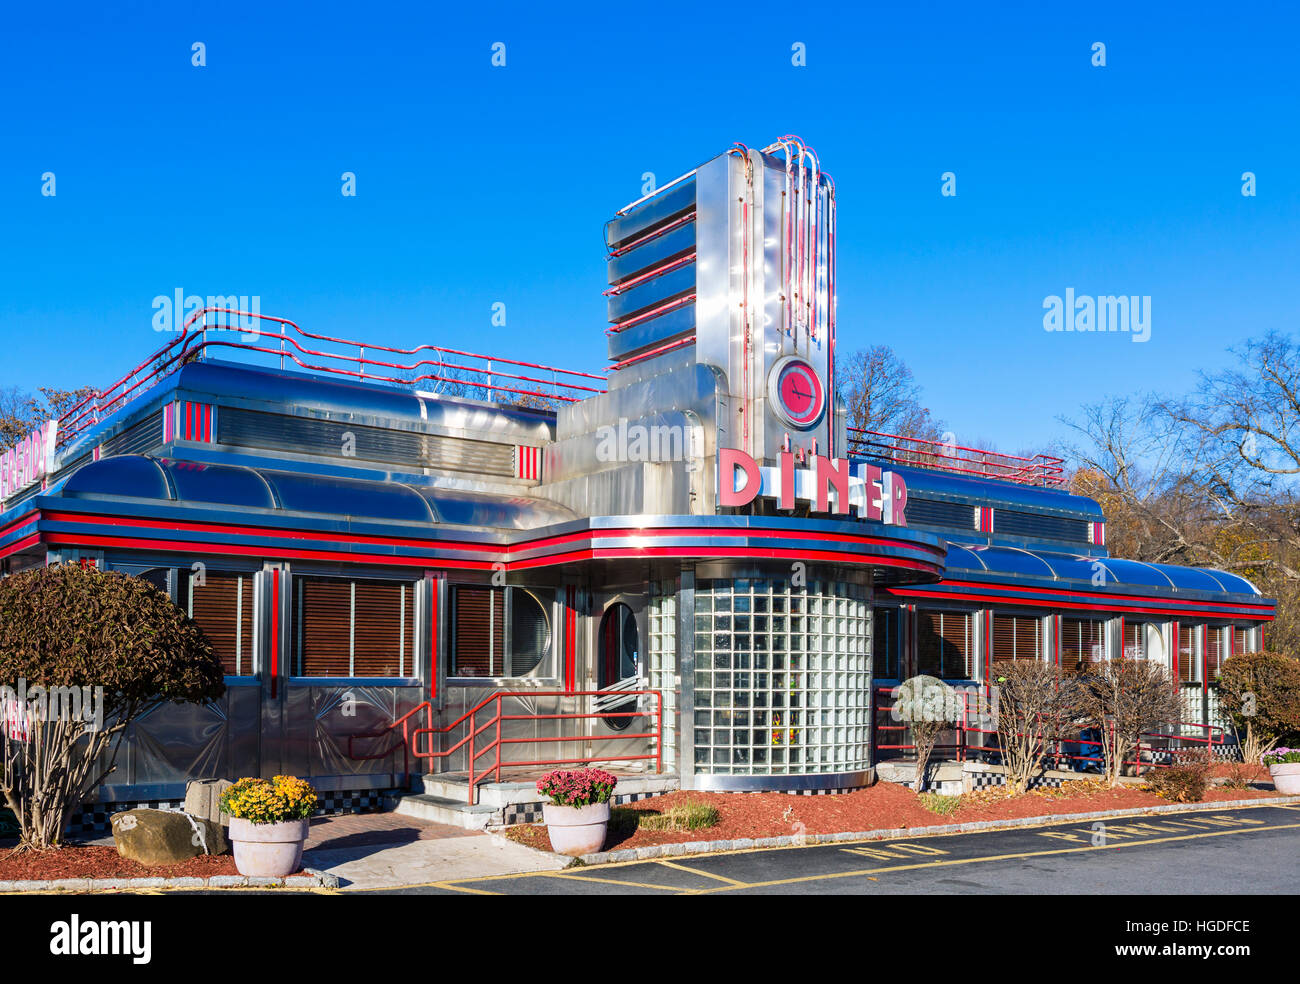 Traditional American Diner, Hyde Park, New York State, USA - Stock Image